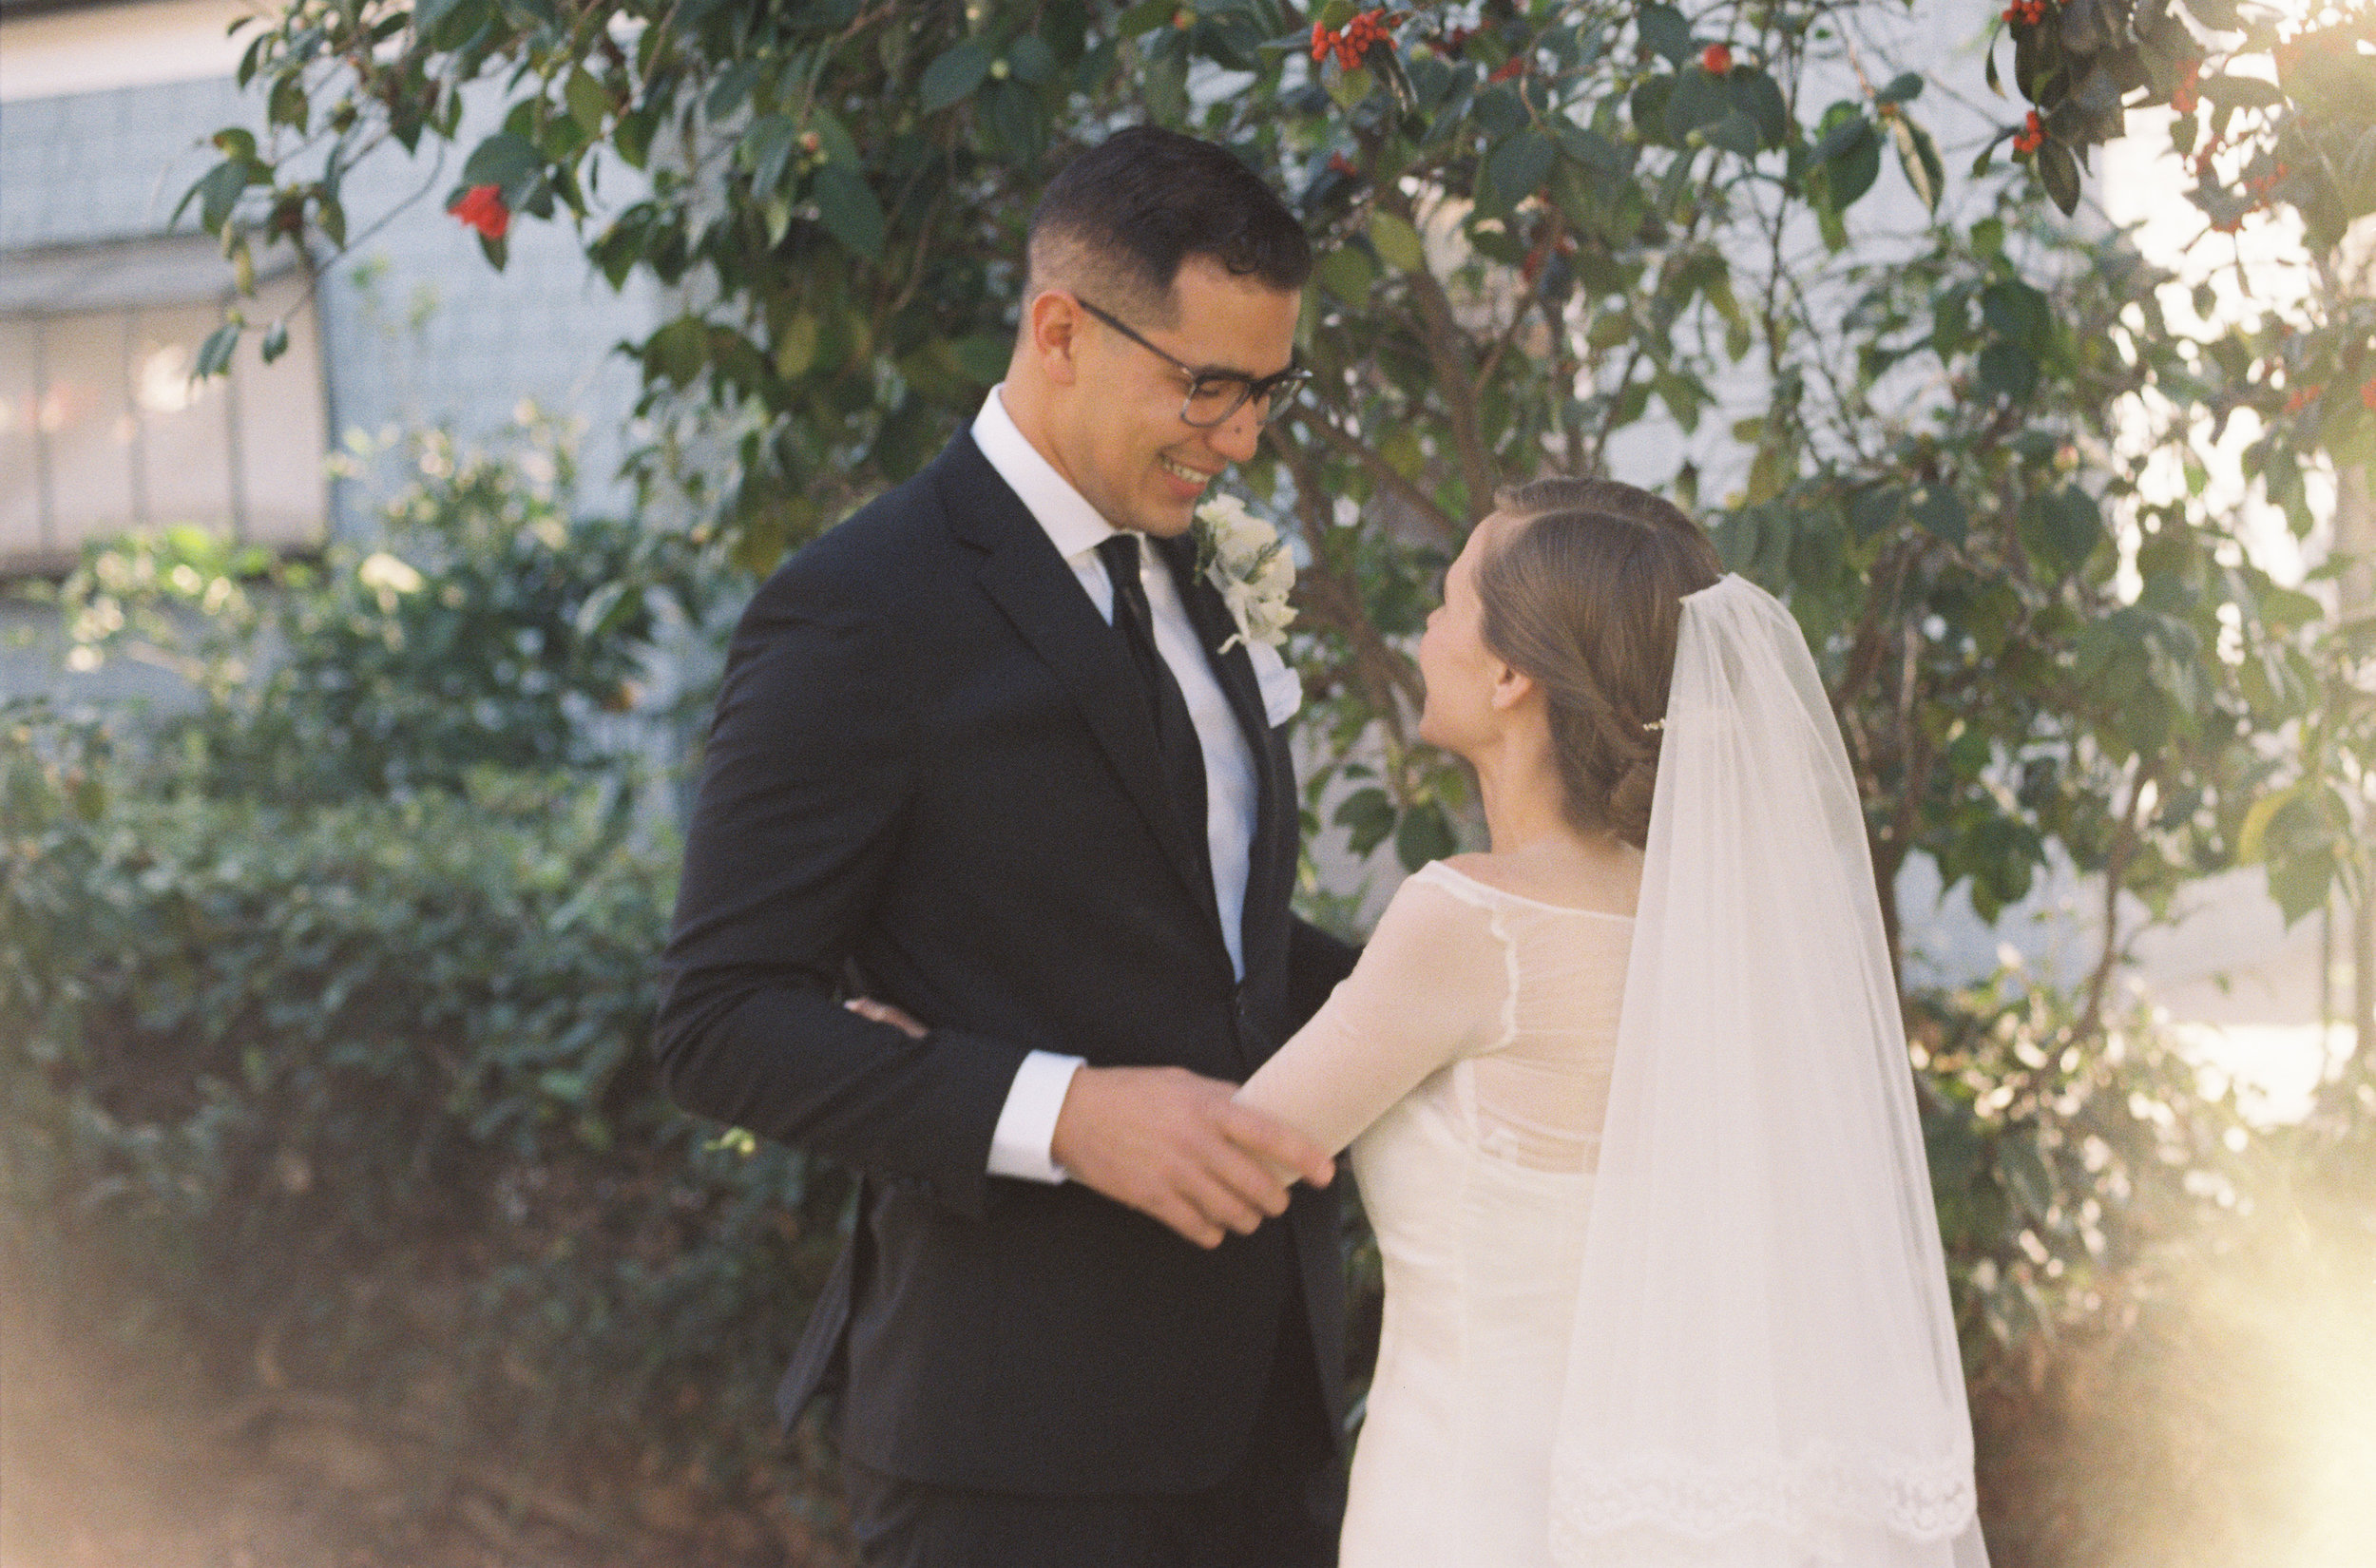 First Look Photo | Southern California Romantic Wedding Near Their Home | Unions With Celia | Amy & Darren Photography |